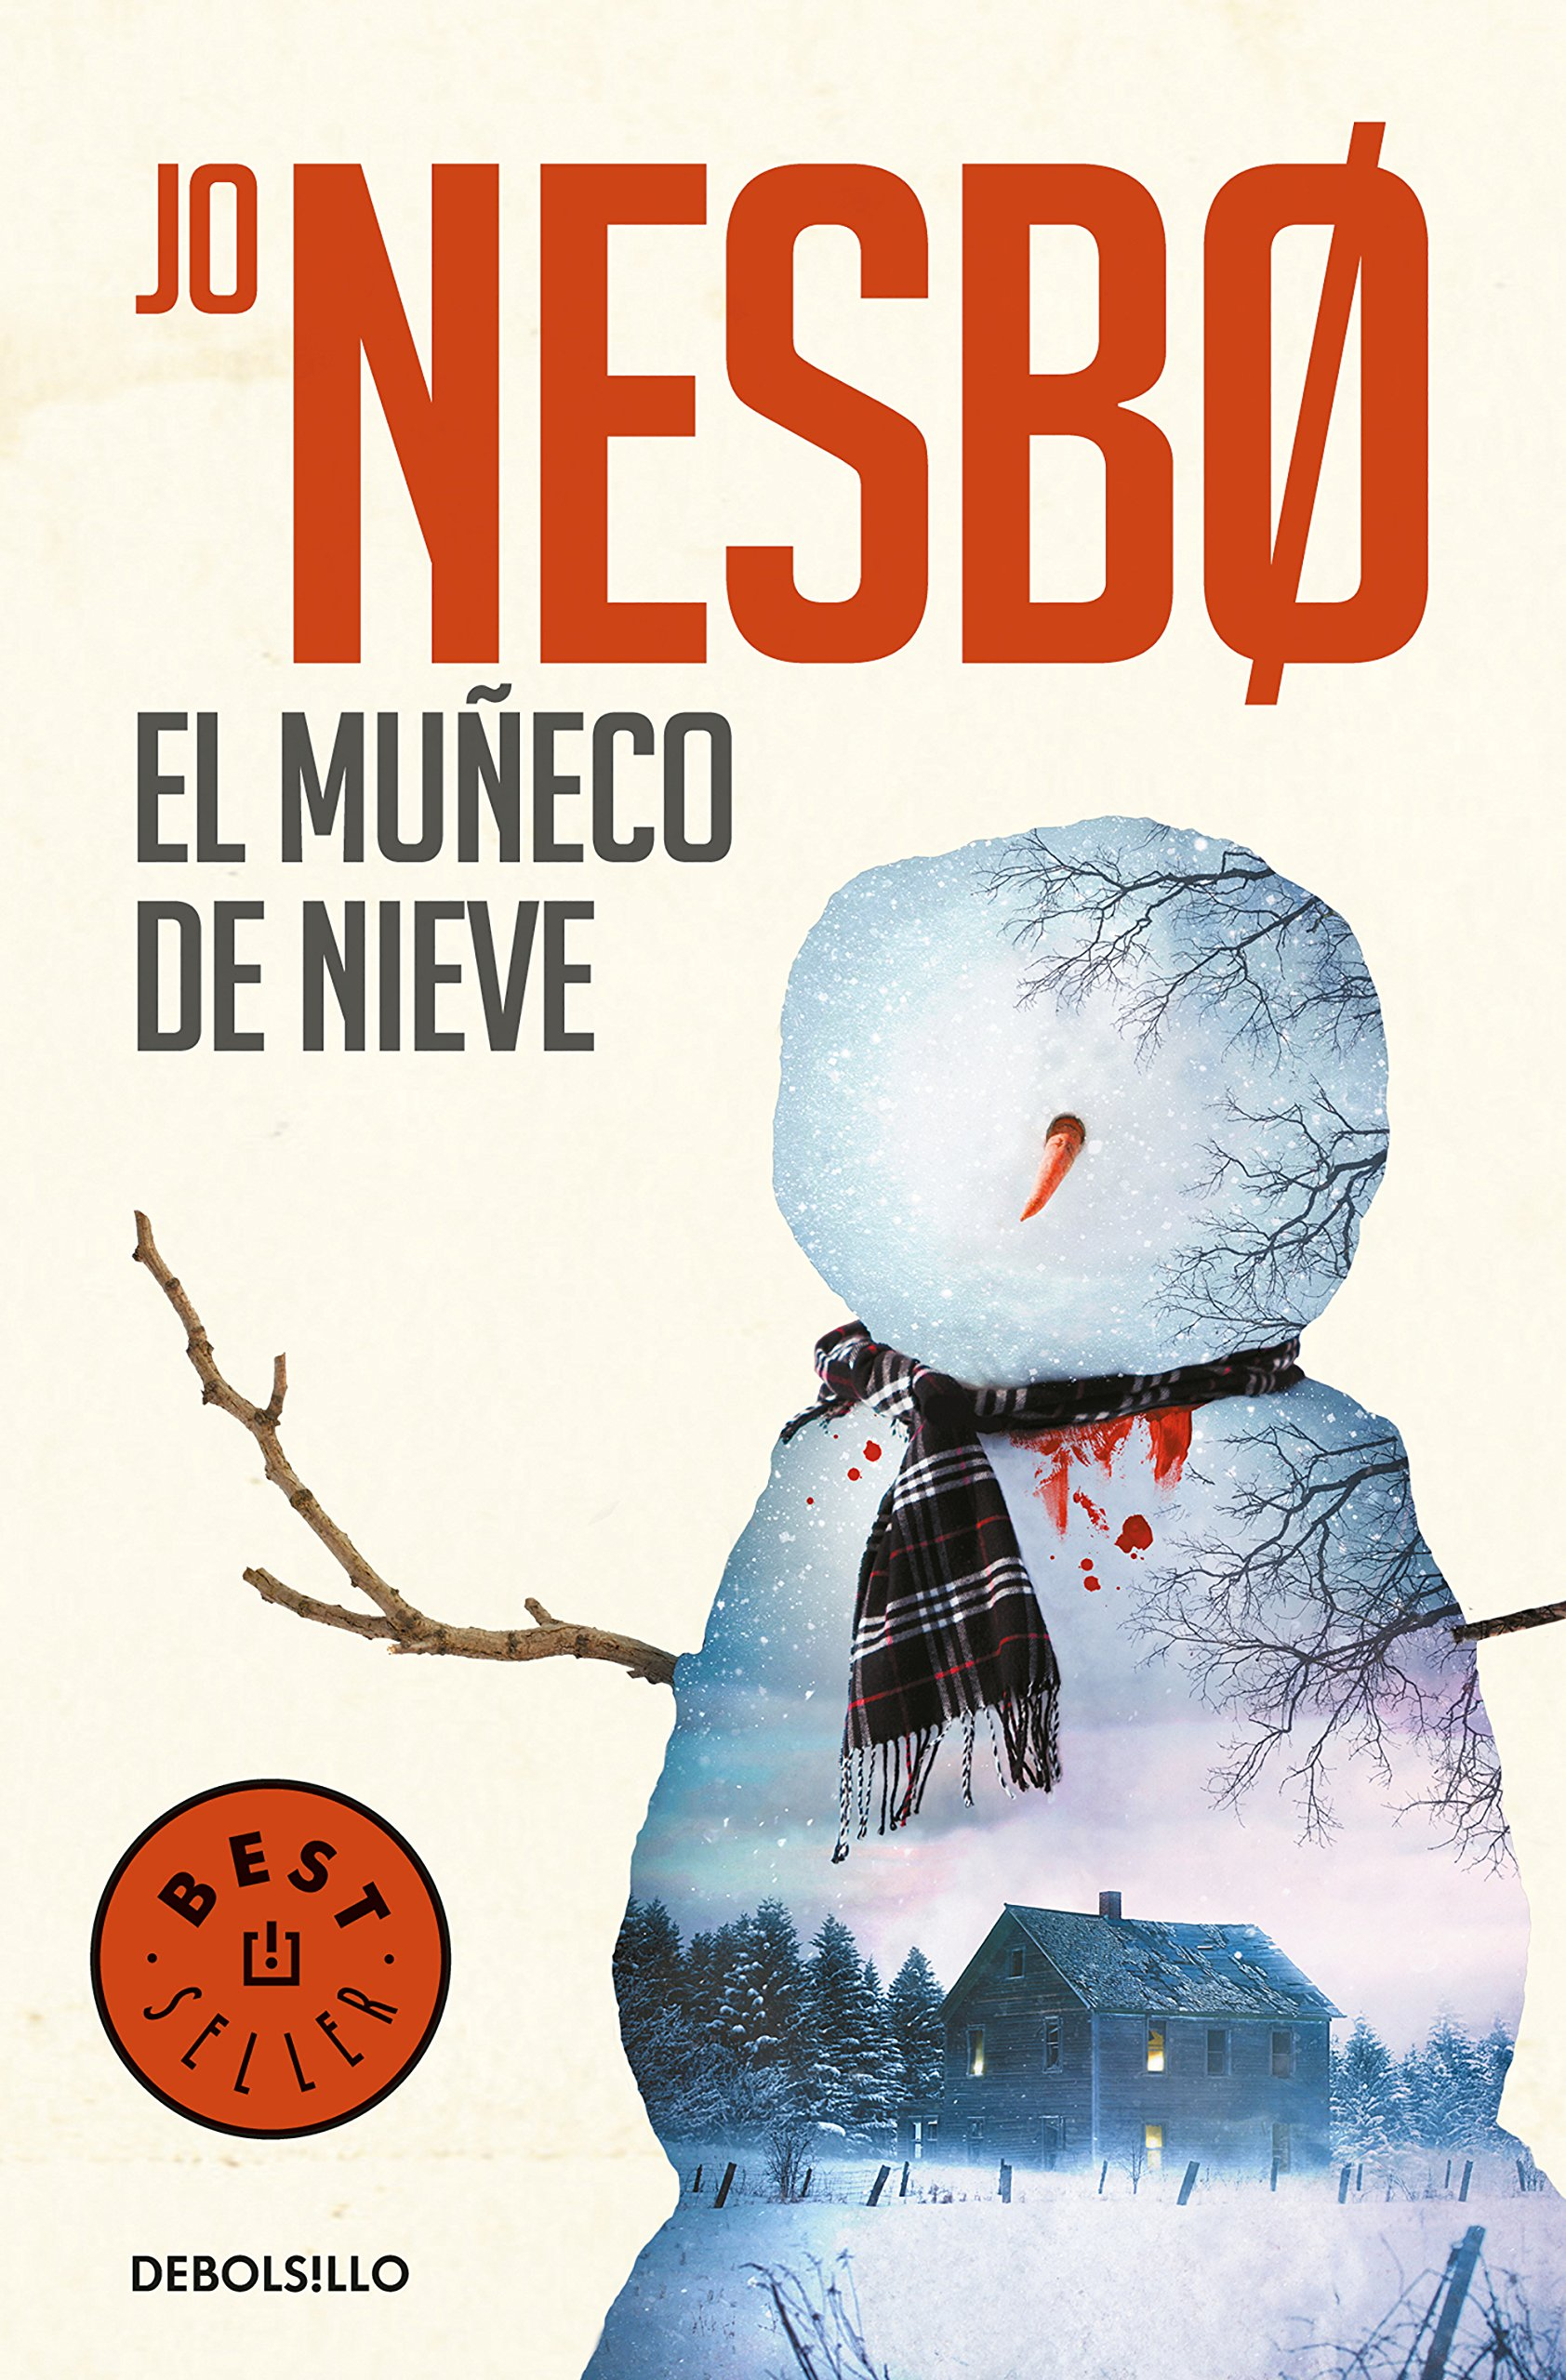 El muñeco de nieve (Harry Hole 7) (BEST SELLER) Tapa blanda – 6 sep 2018 Jo Nesbo DEBOLSILLO 8466344004 Crime & mystery